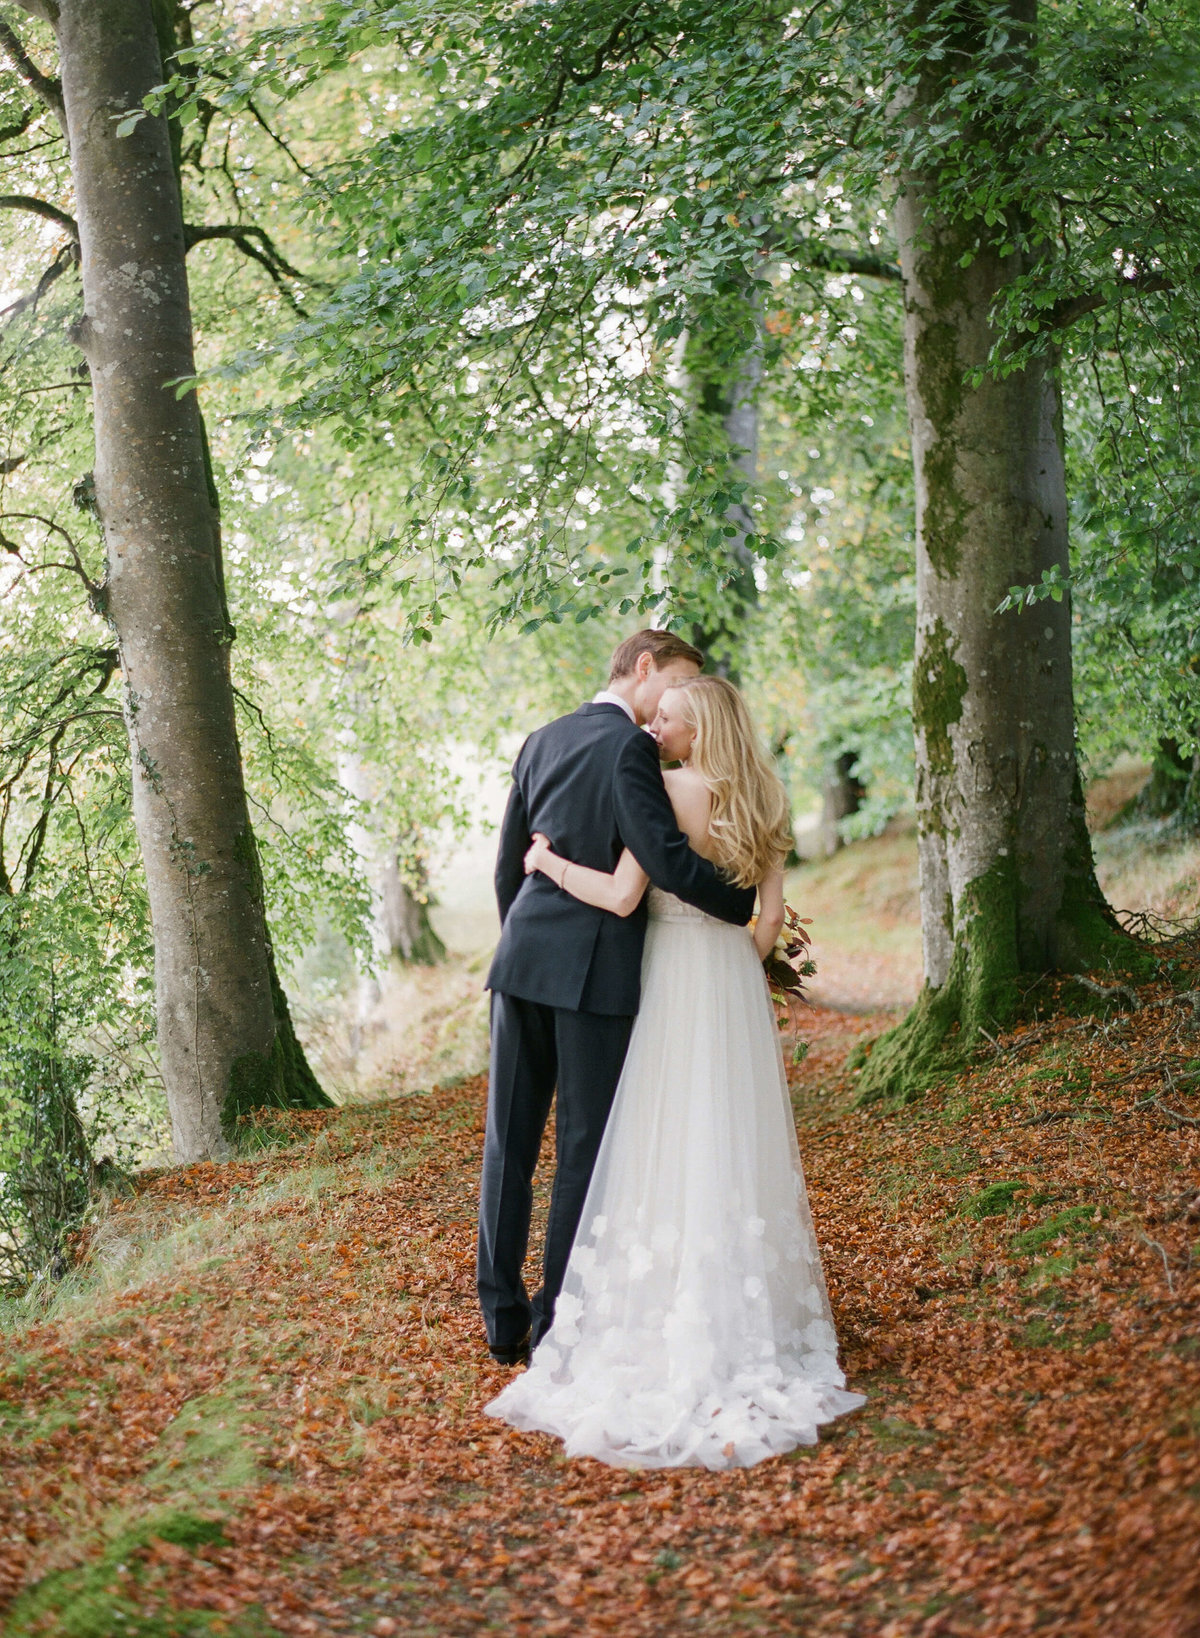 47-KTMerry-weddings-bride-groom-Ireland-woods